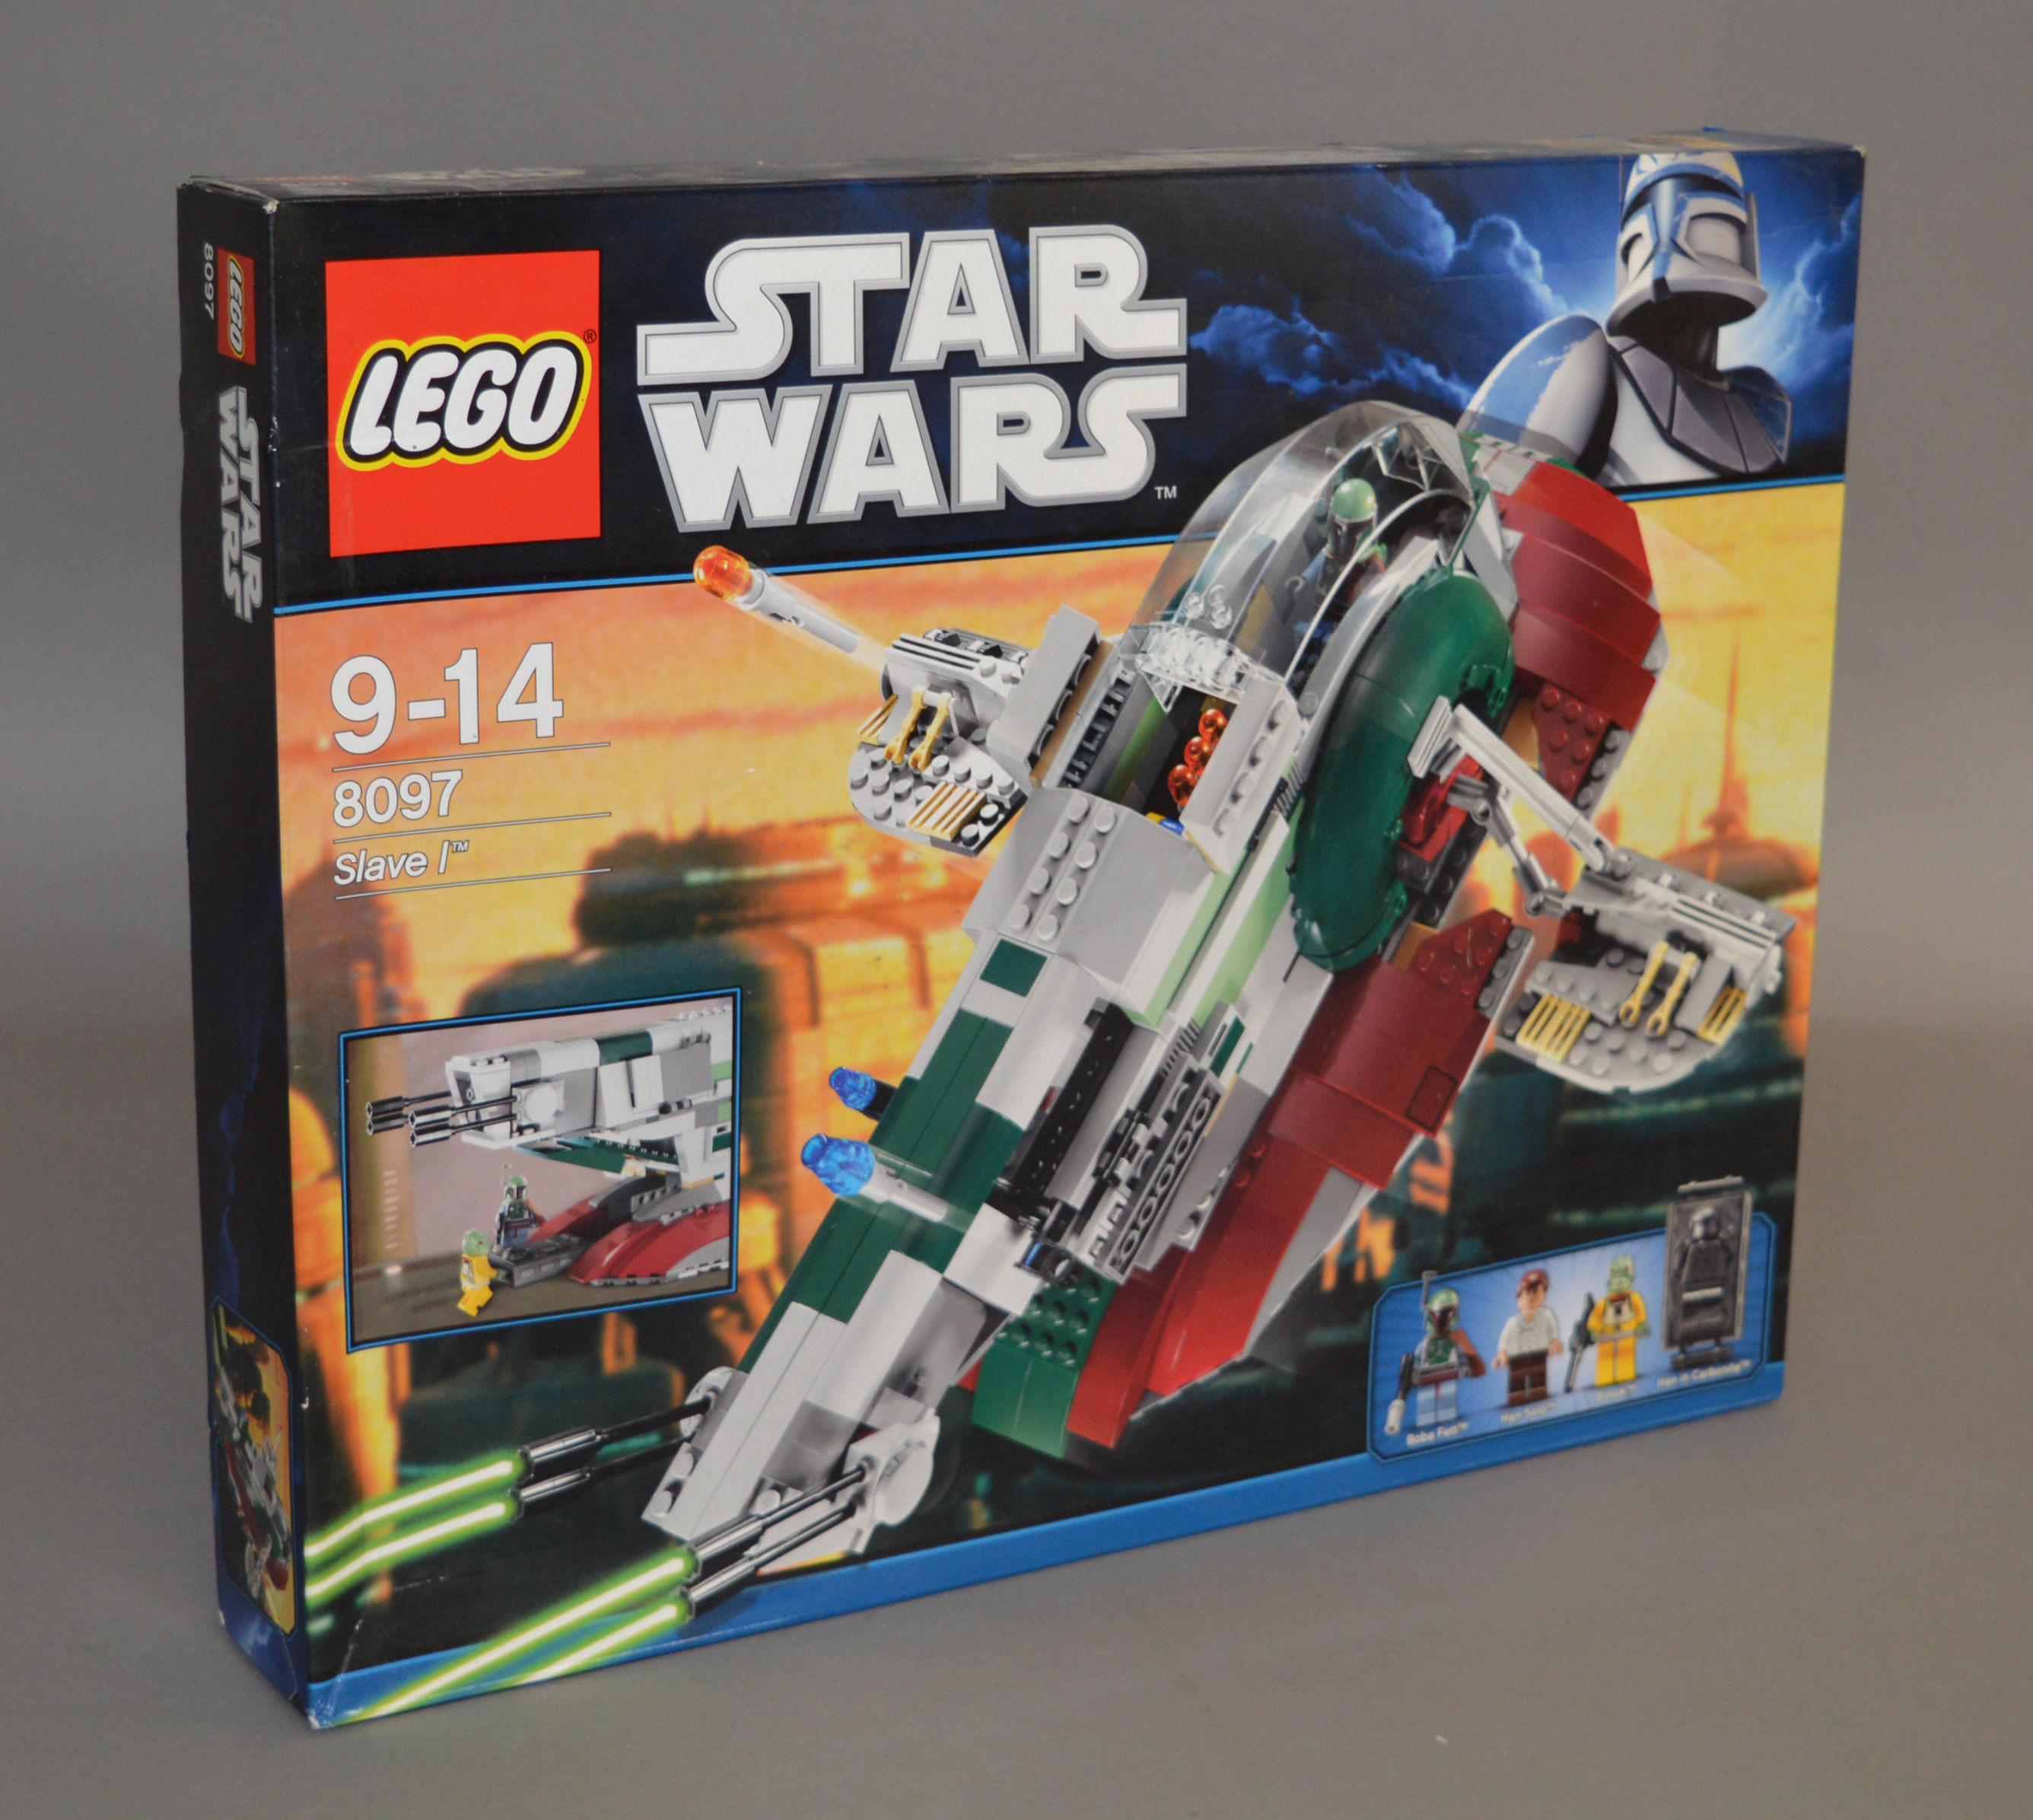 Lot 20 - Lego Star Wars 8097 'Slave I', in generally G/G+ box with some crushing and creasing.